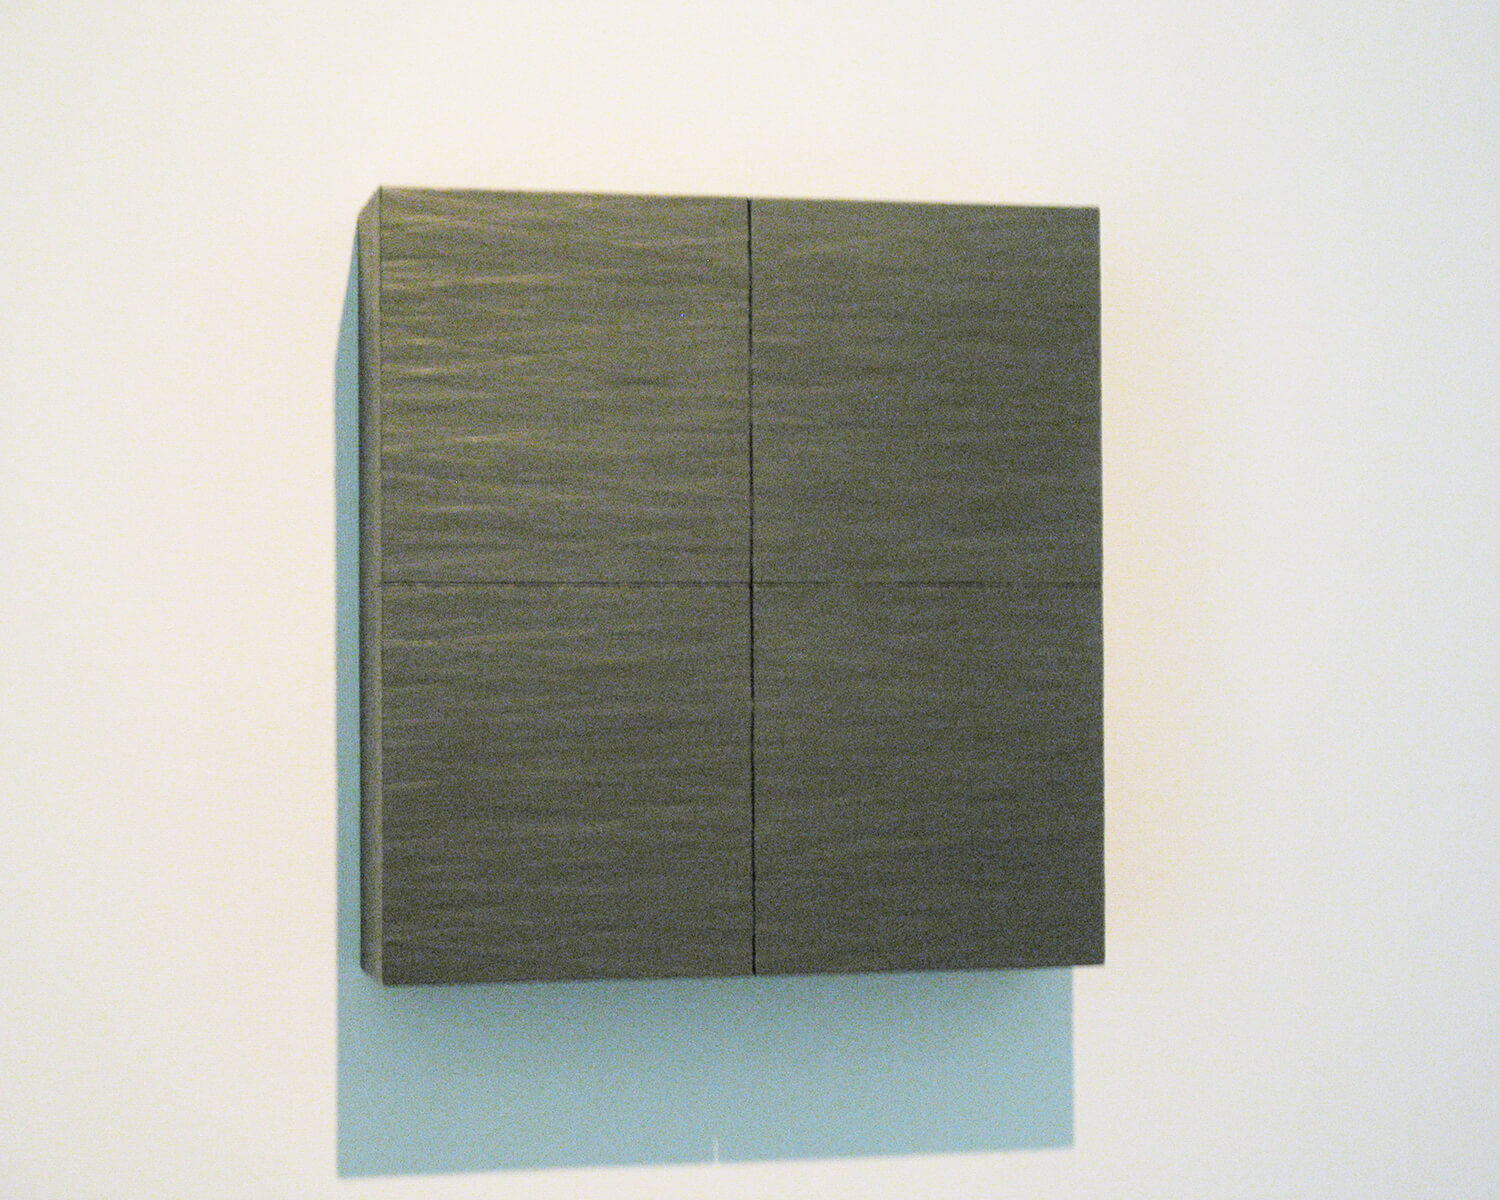 gun metal grey, 1989<br>be-wax, paper tape on honeycomb board, 64.0 x 60.8 x 15.7 cm / courtesy of Gallery Yamaguchi, Osaka